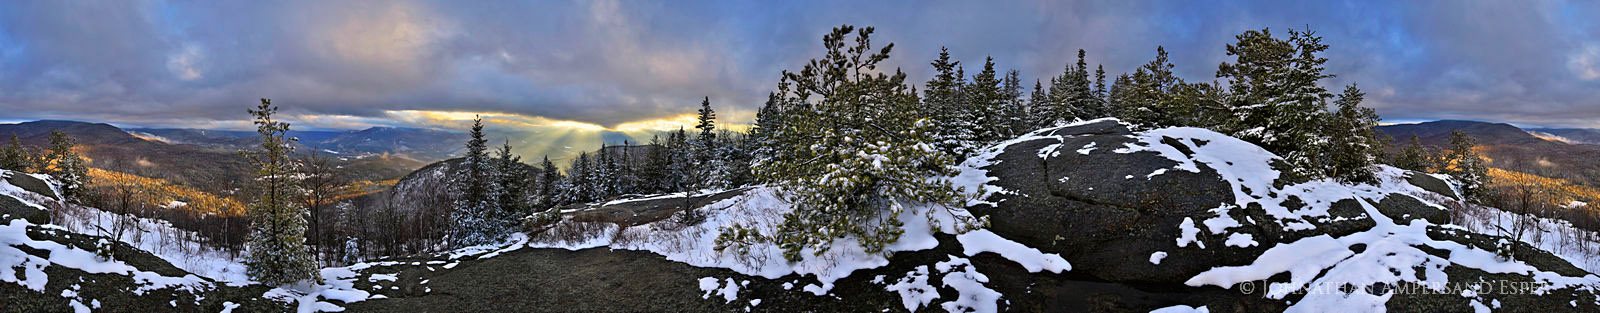 Big Crow Mountain,Big Crow Mt summit, summit,360 degree panorama,panorama,spring,snowfall,spring snowfall, photo